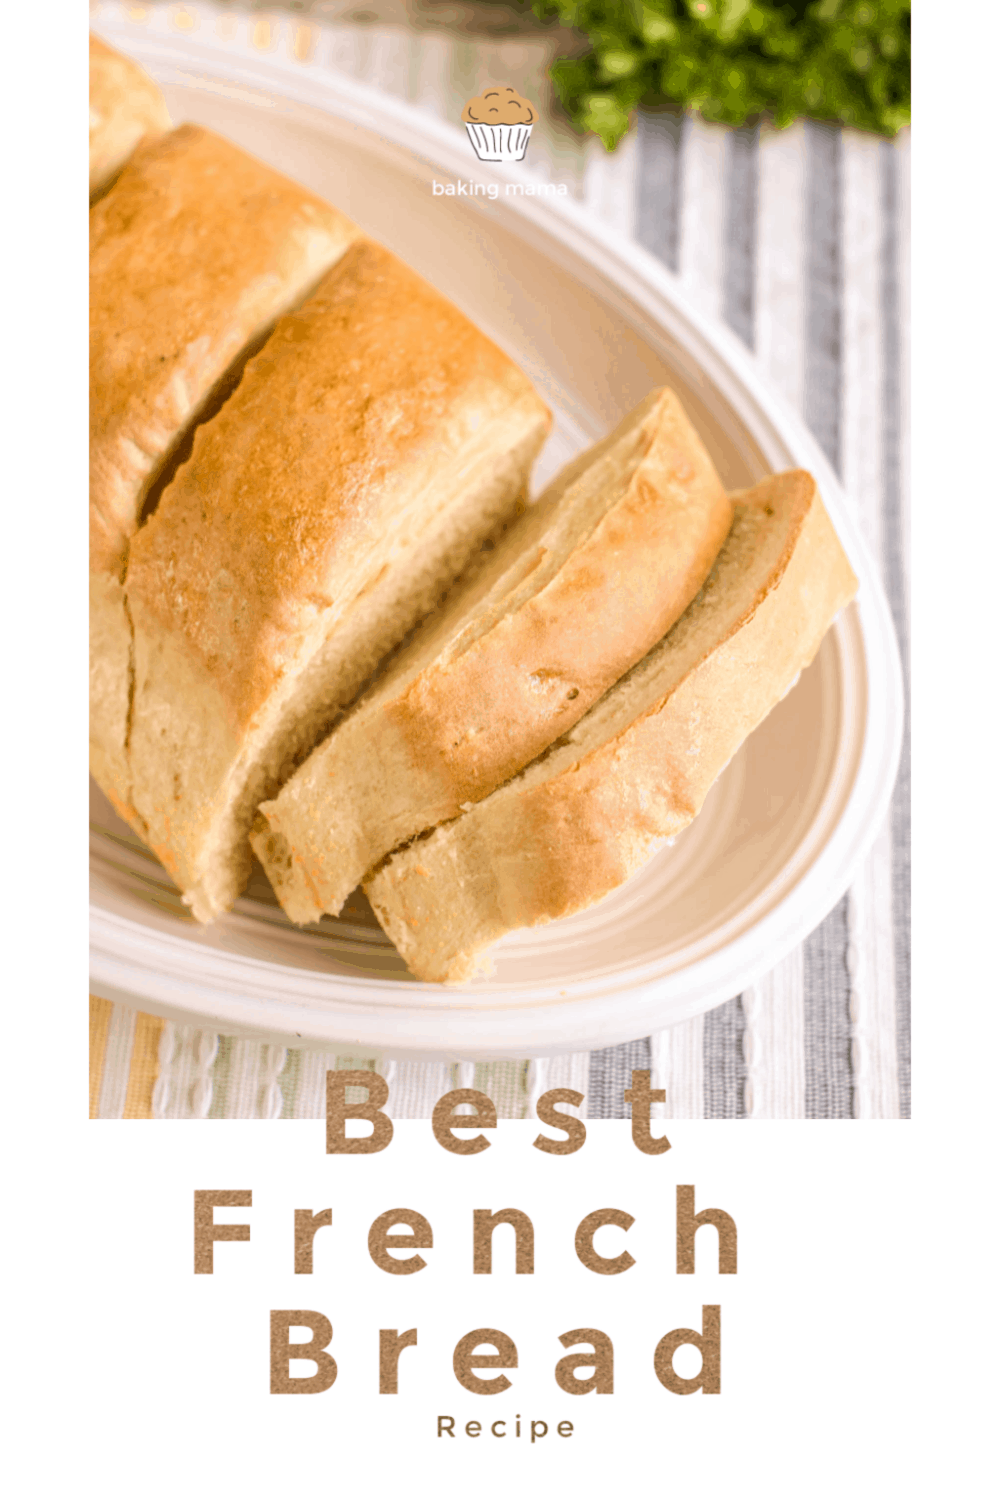 Stand Mixer French Bread is easy to make and so delicious. #bread dough #bread recipe #french bread #standmixerfrenchbread #mooreorlesscooking via @Mooreorlesscook